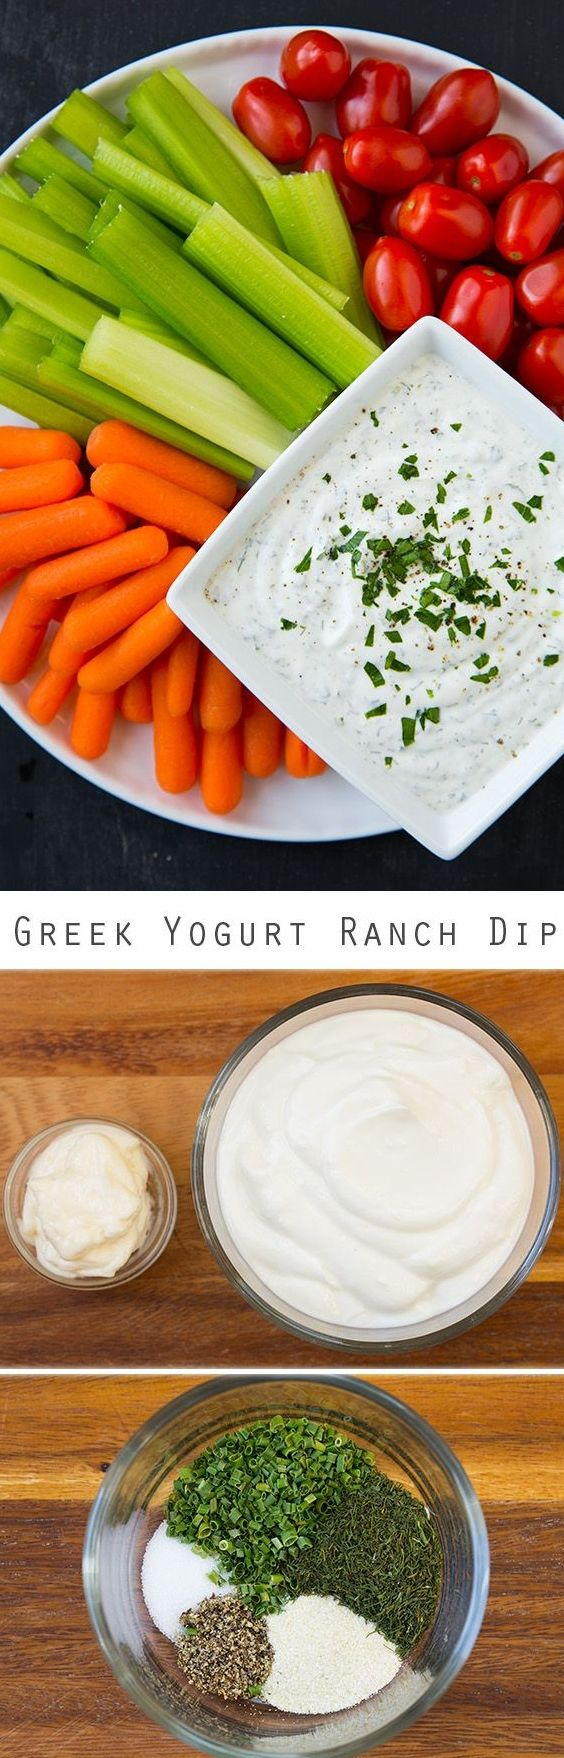 Lighter Greek Yogurt Ranch Dip. This is much lighter than a ranch dip but tastes equally as good if not better! It's my new favorite veggie dip!!